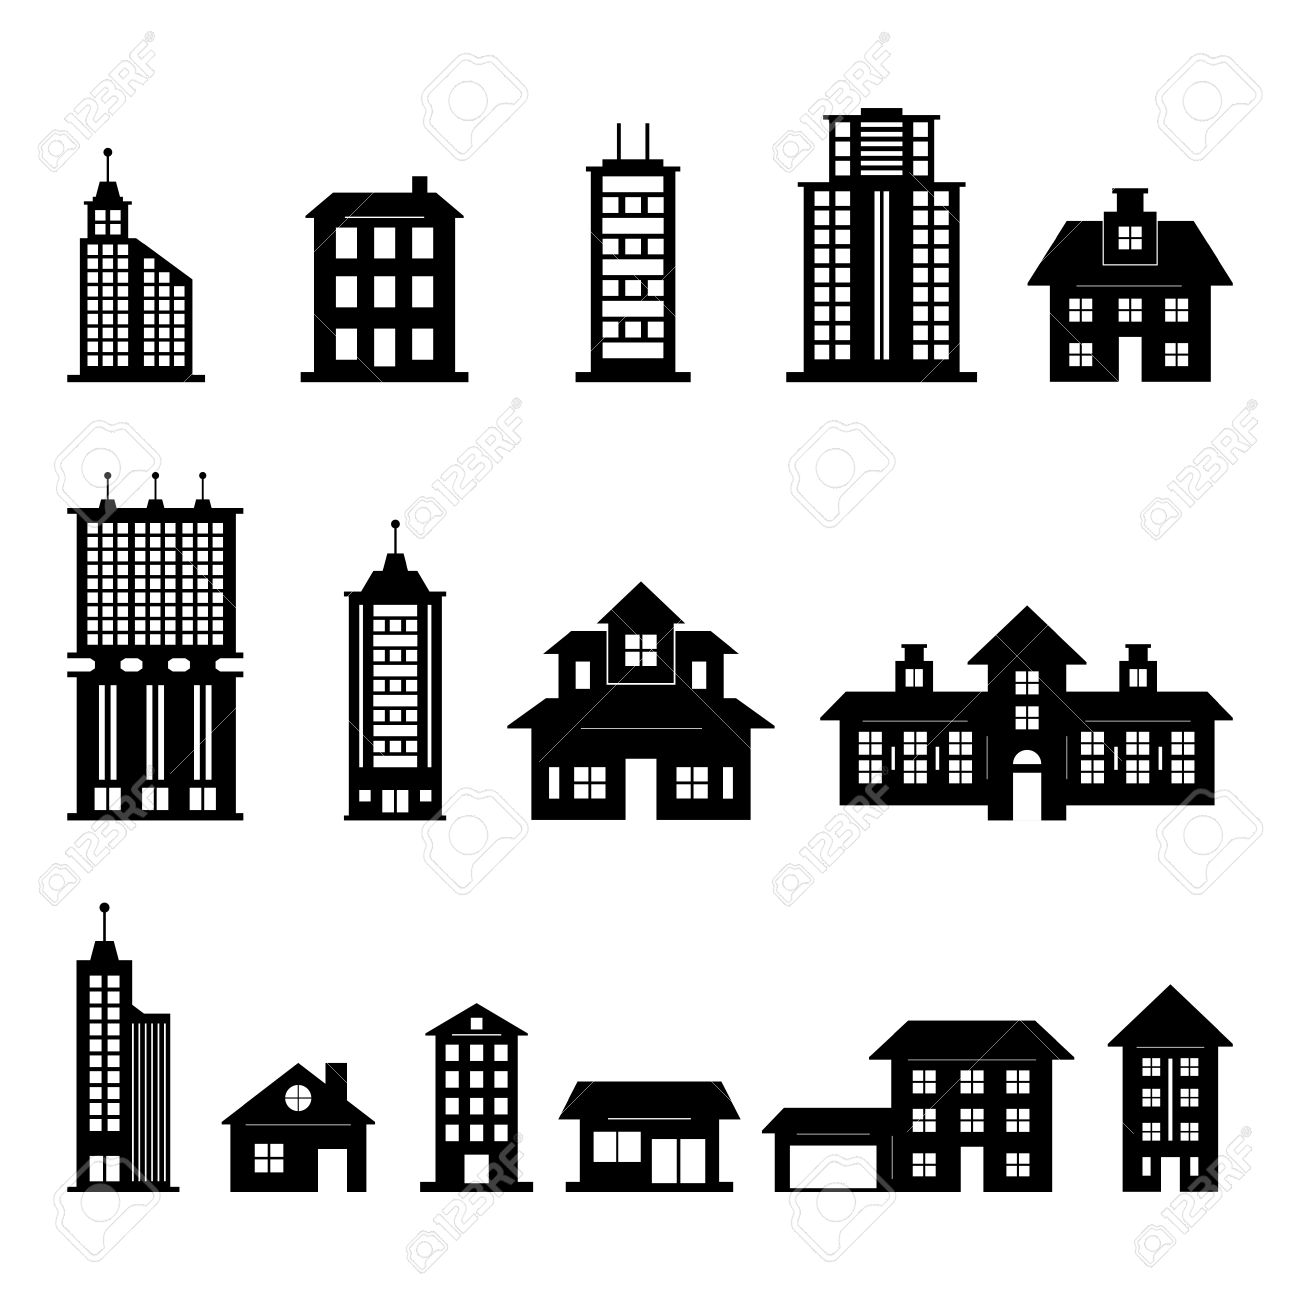 building vector royalty free cliparts vectors and stock rh 123rf com building vector background building vector logo